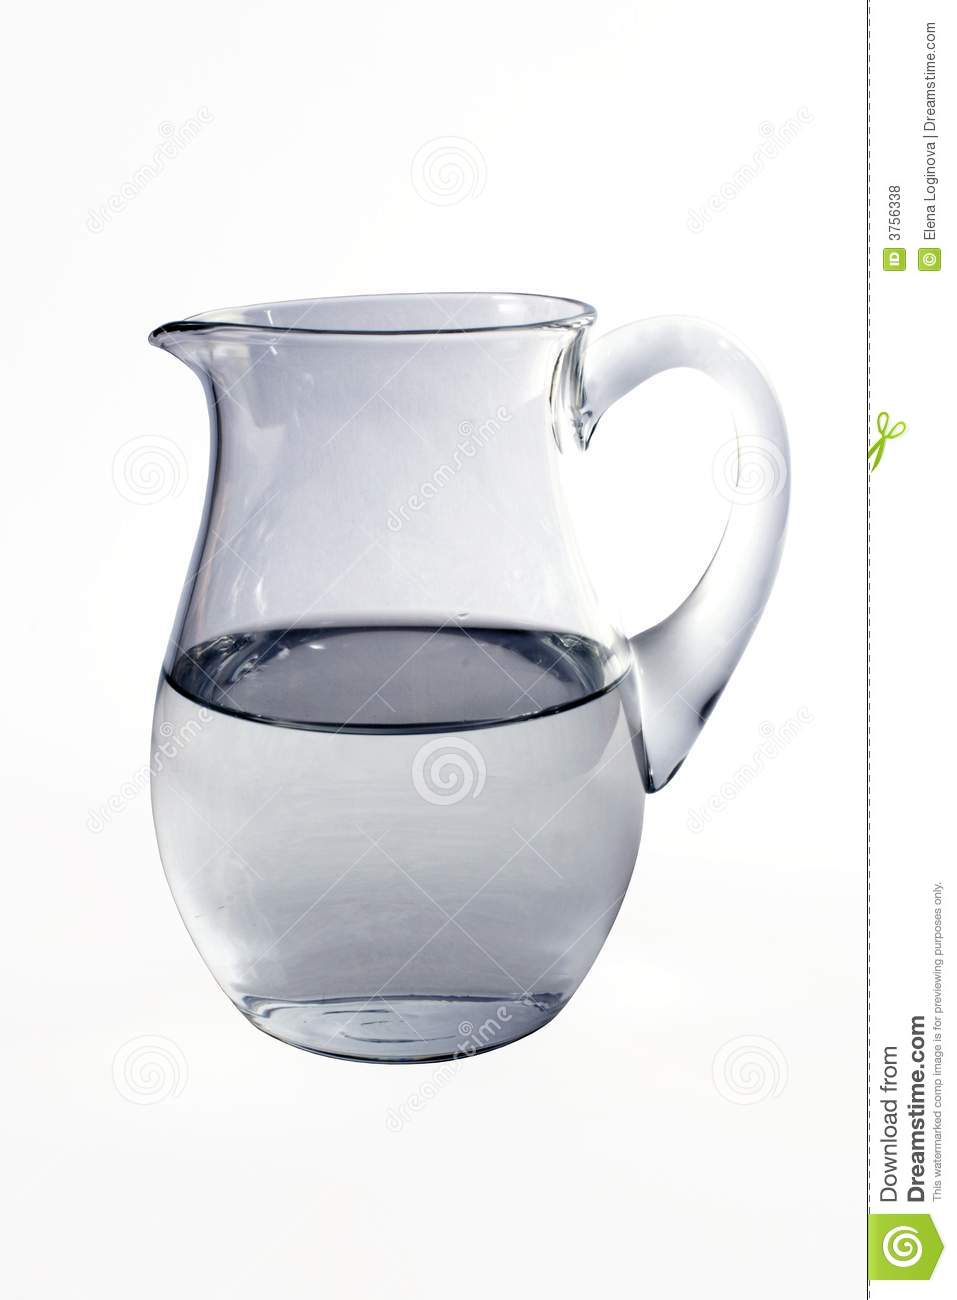 Jug With Water Royalty Free Stock Photos - Image: 3756338